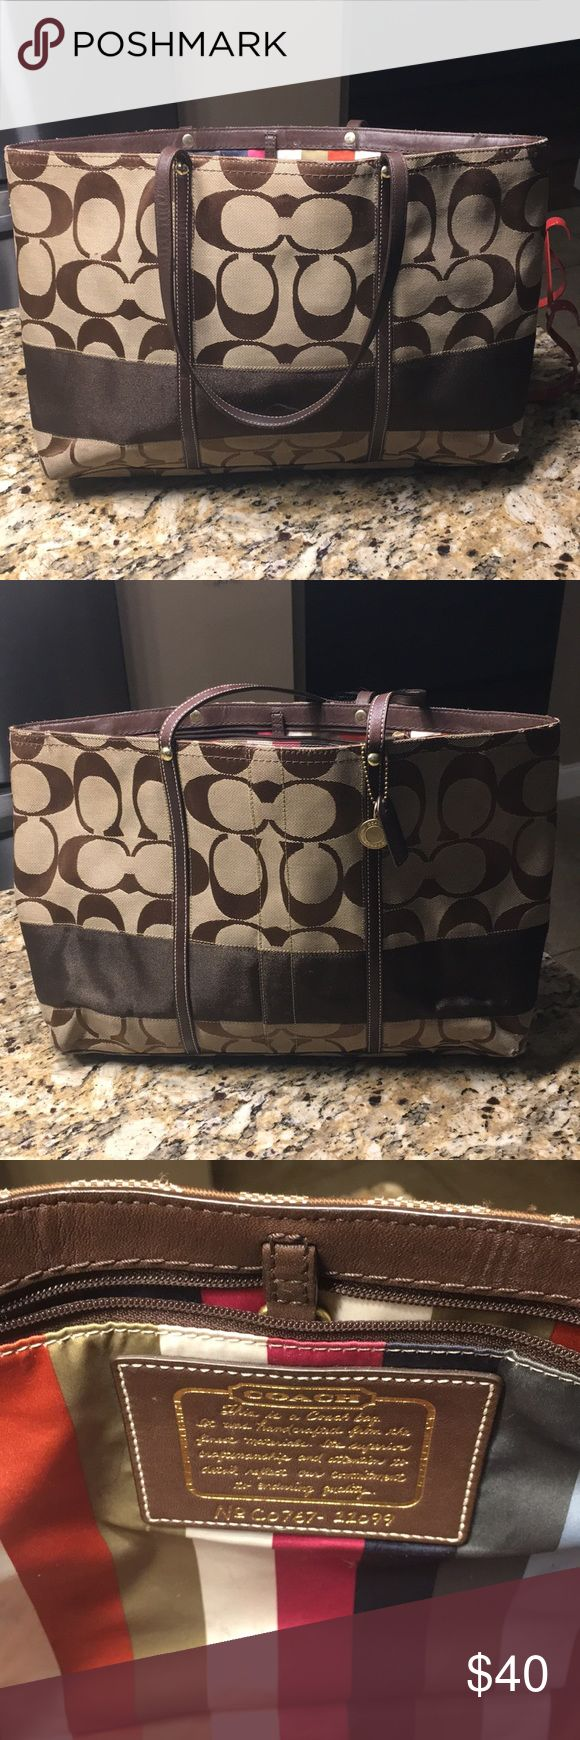 Auth Coach Tote Bag Coach Tote. Used. Has some pen marks on the inside and light fraying. Coach Bags Totes